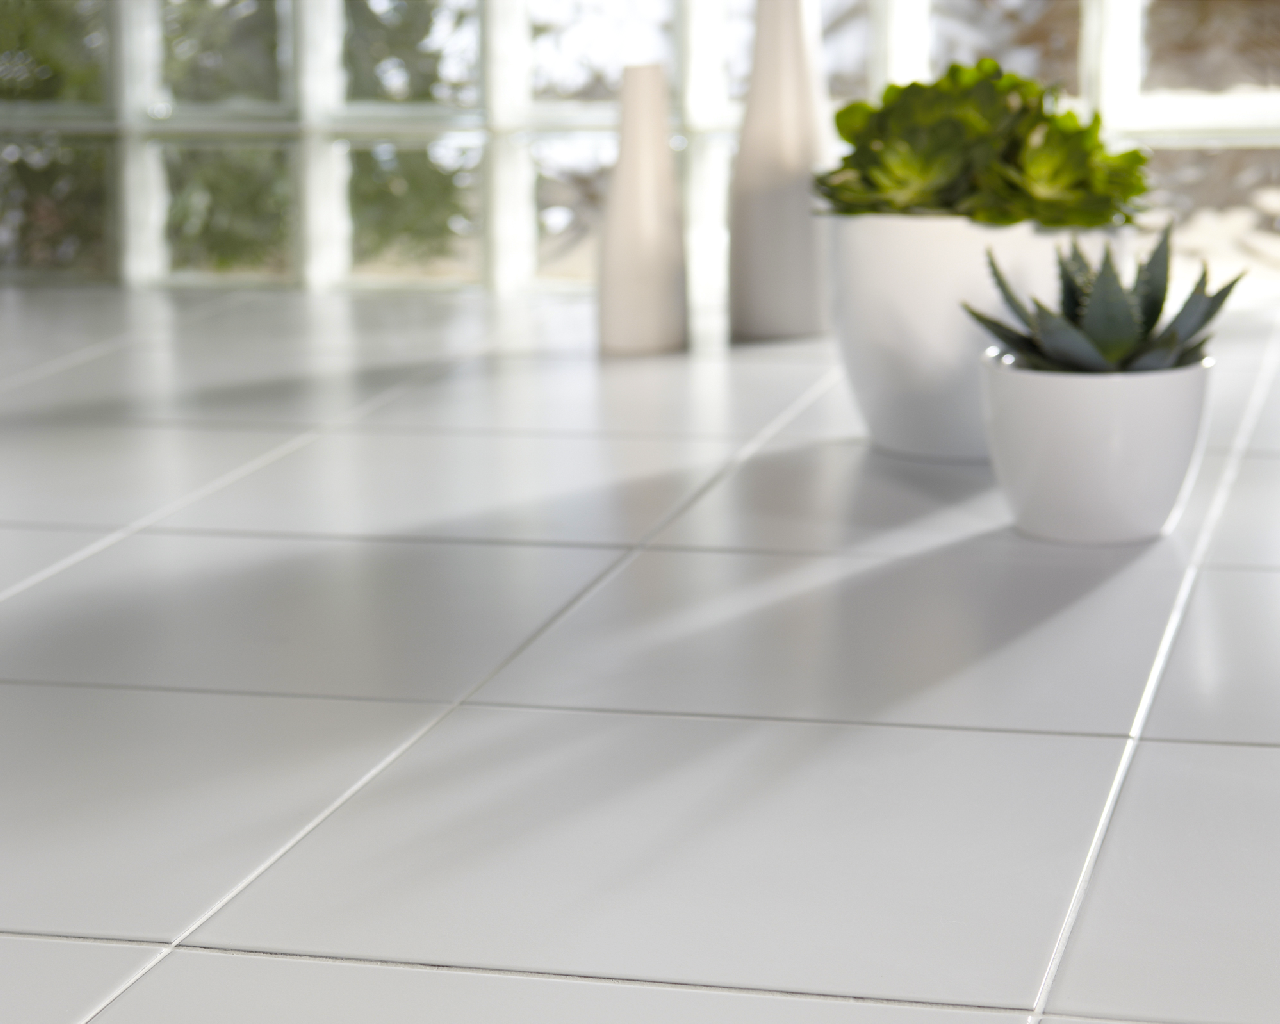 Uncategorized Tiles For The Floor difference between glazed and unglazed tiles httpbit ly11tcxeo steam cleaner for ceramic tile floors are inorganic non metallic solids these substances have decided by heating s